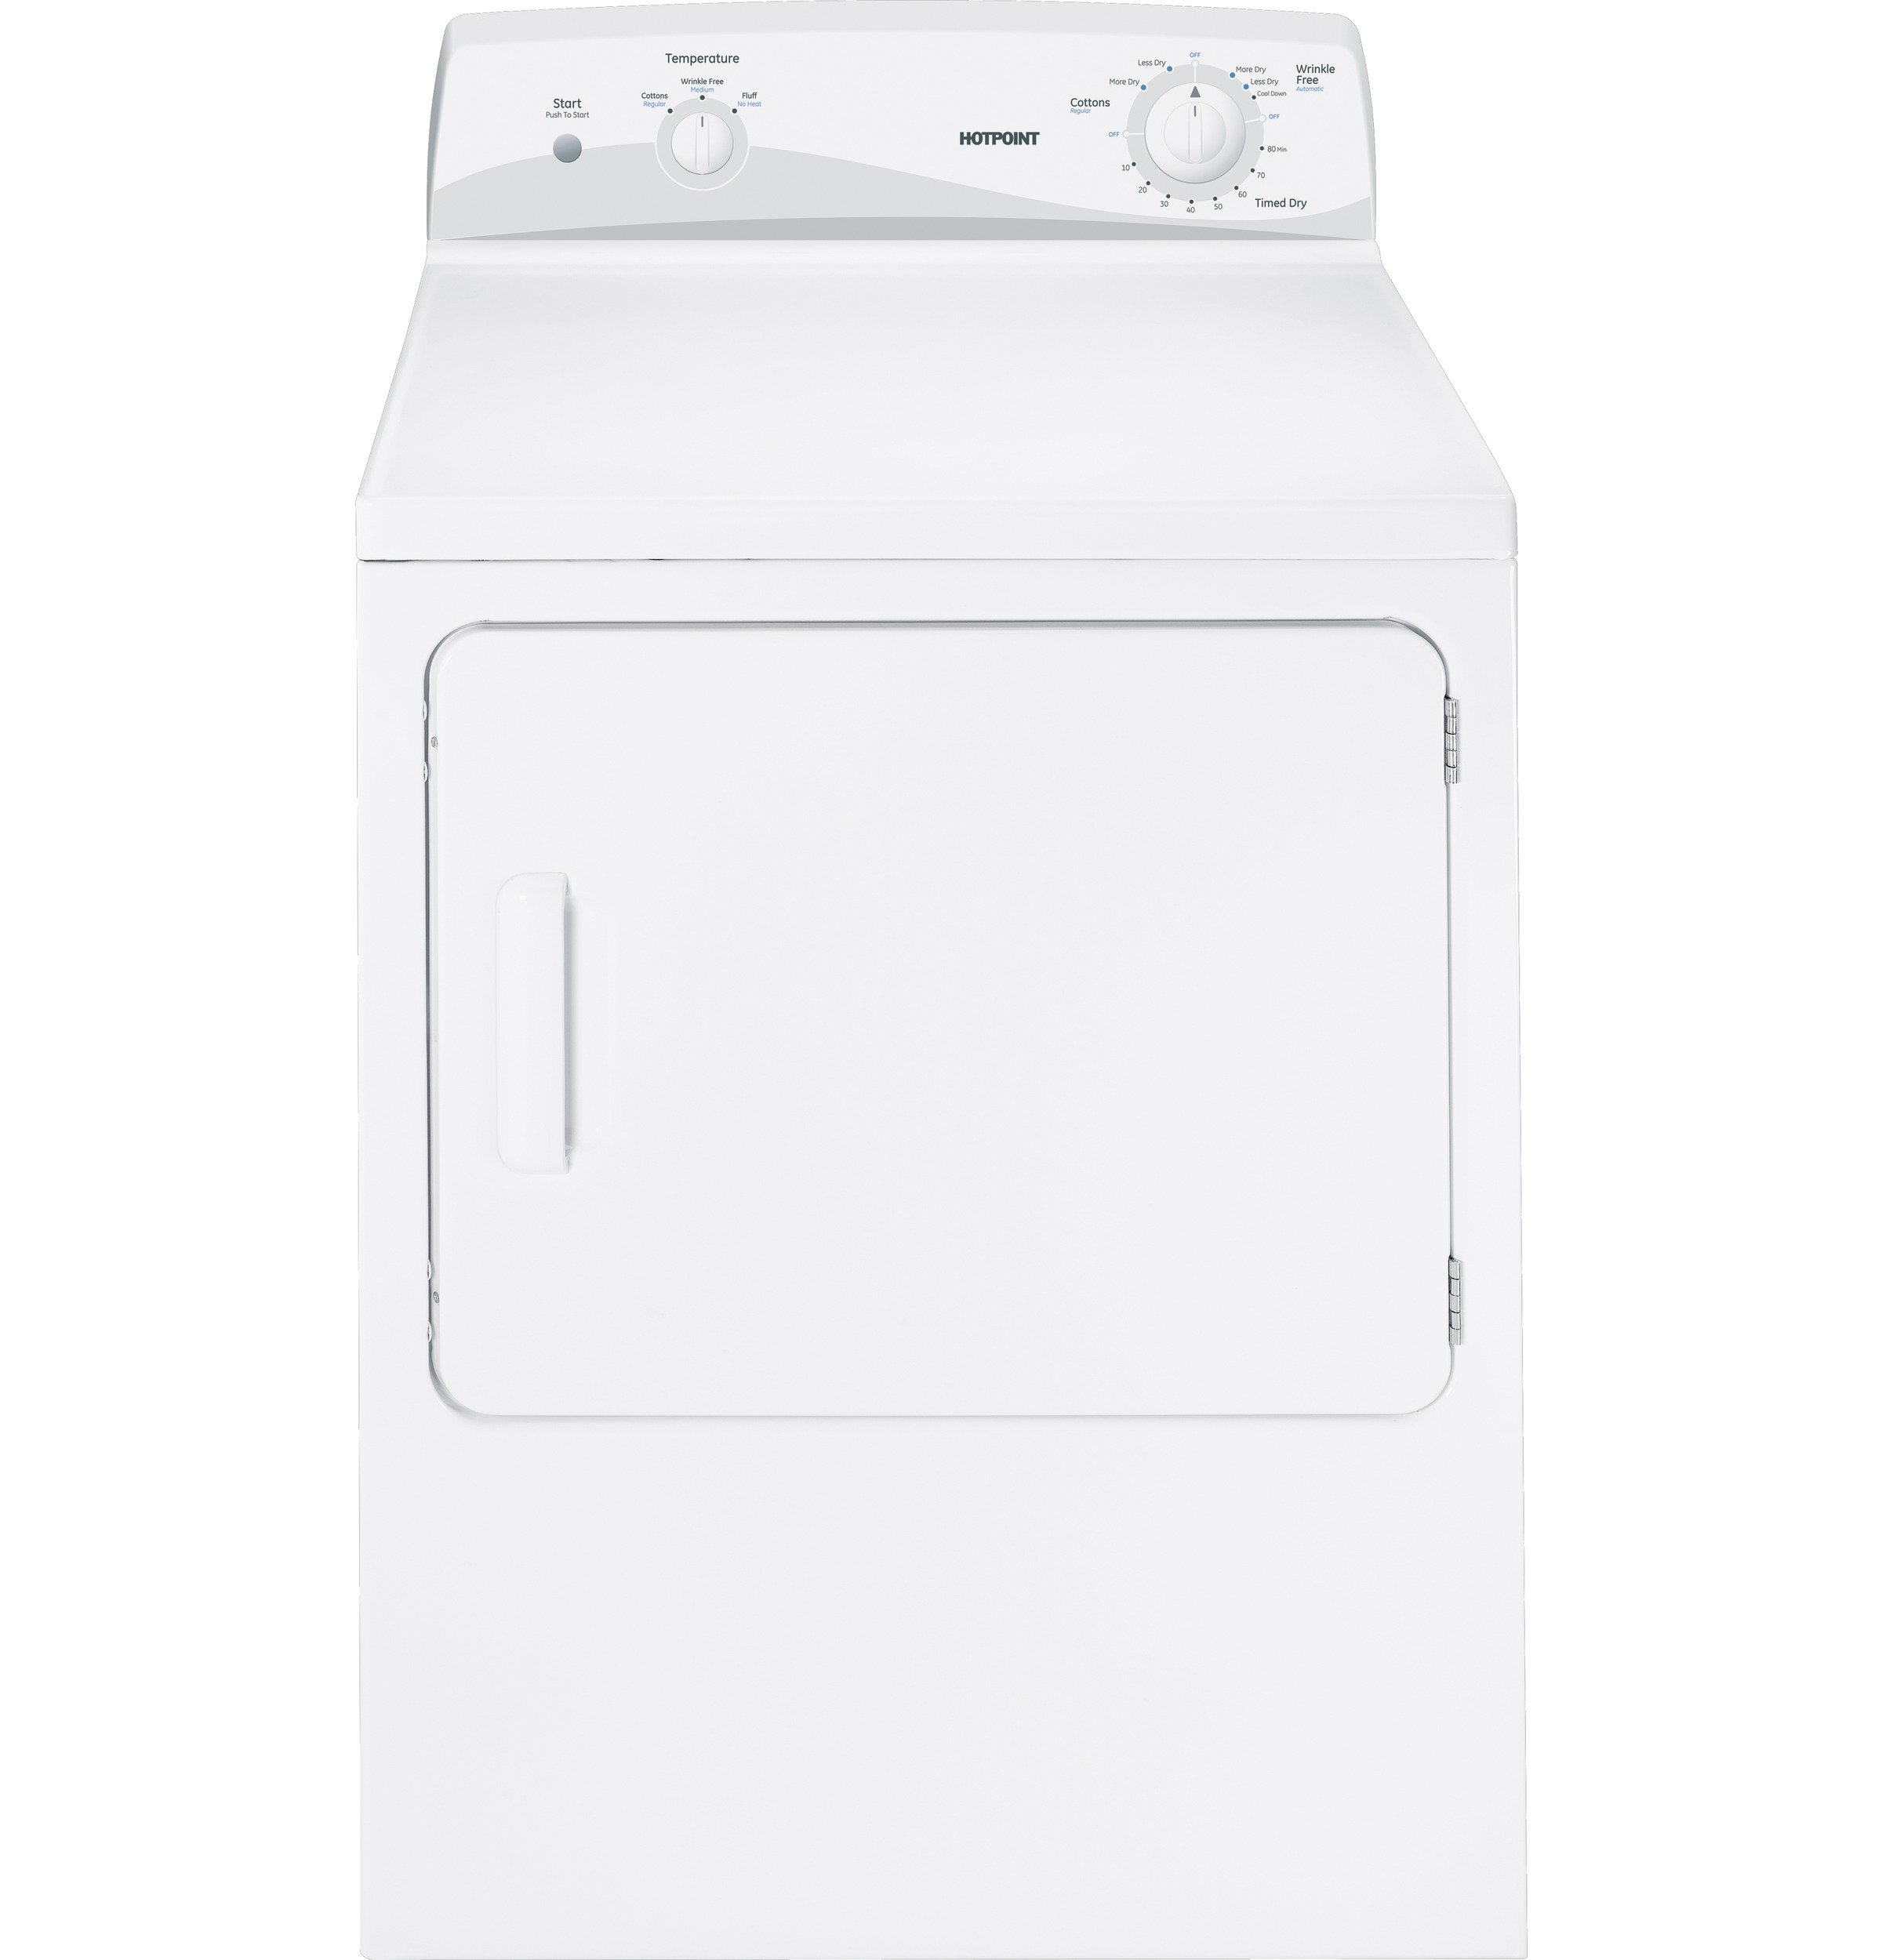 HOTPOINT WASHERS & DRYERS 294169 6 Cu.ft. Gas Dryer, White, 4 Cycles, Reversible Door